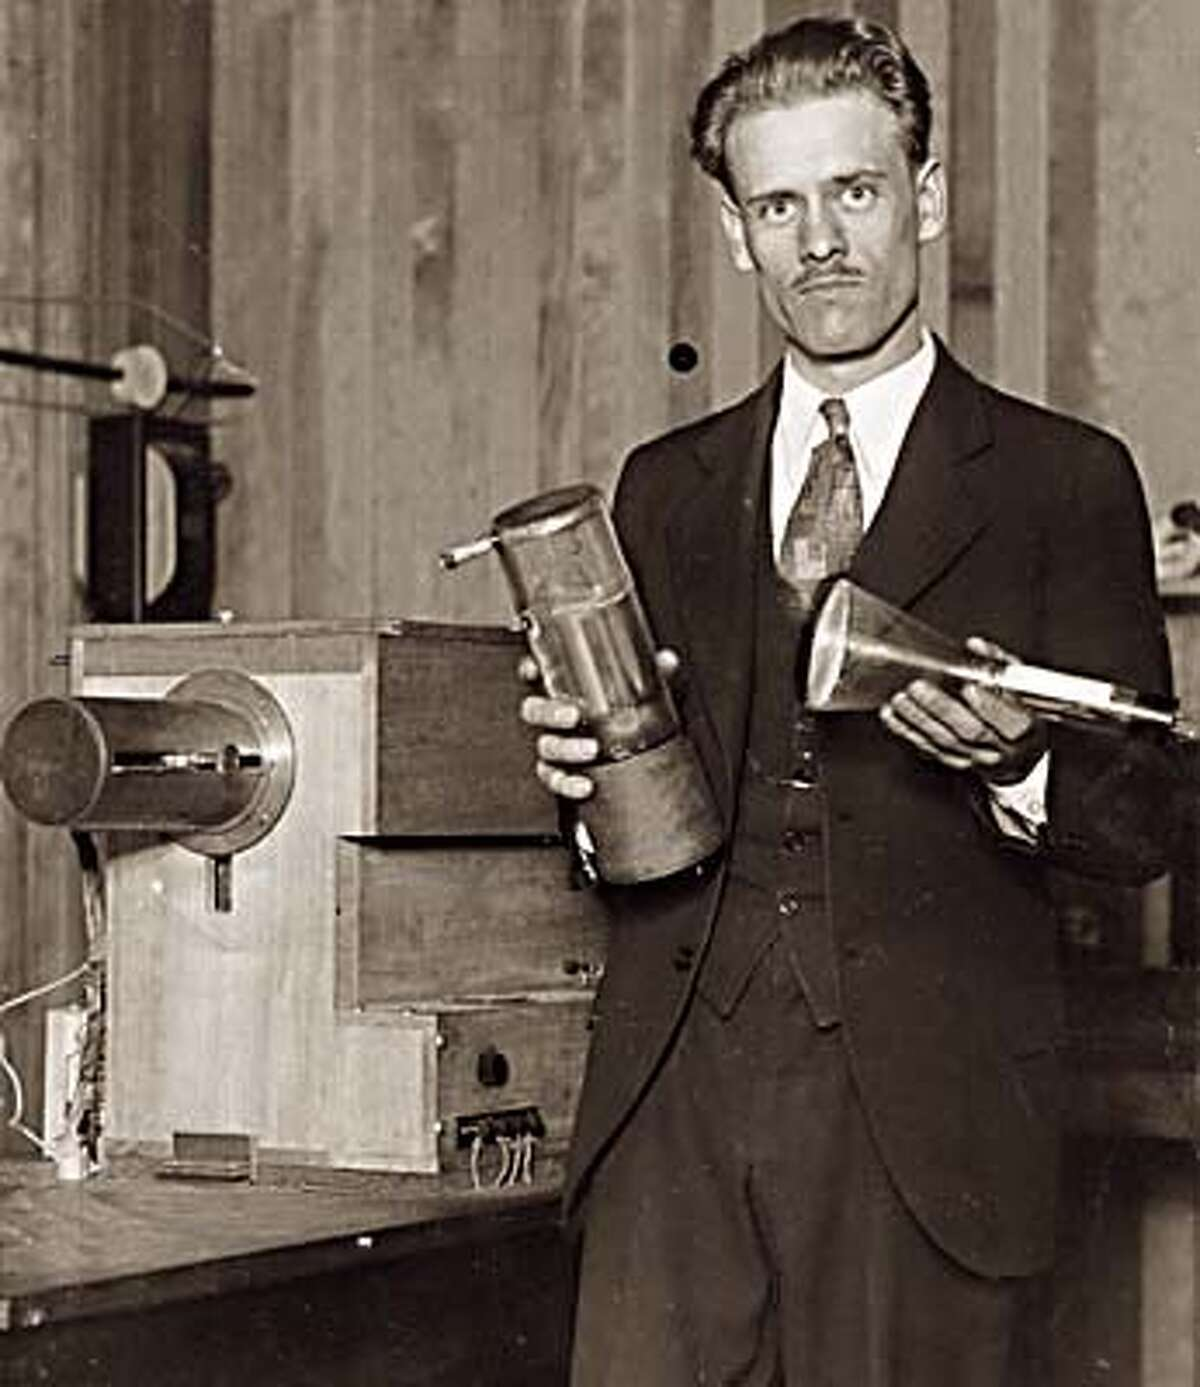 Philo Farnsworth, photographed by The Chronicle showing off his invention for the first time, didn't hold on to his patents, selling them to RCA Victor for $1 million in 1939. Chronicle Photo, 1928